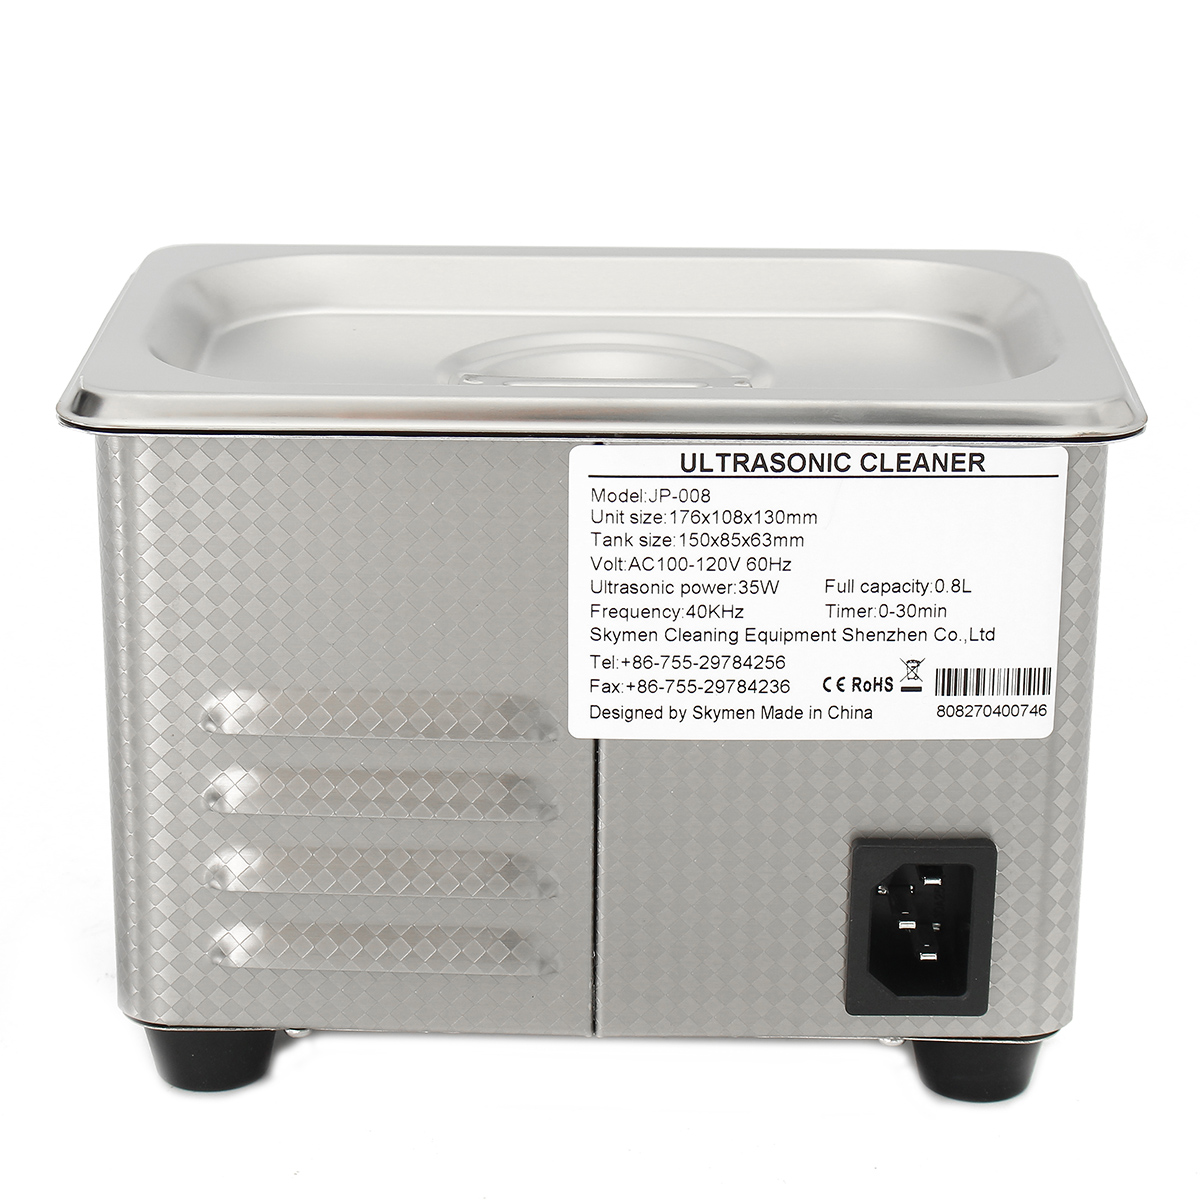 Stainless Steel Digital Ultrasonic Cleaner Dental Tank Heater Cleaning Equipment